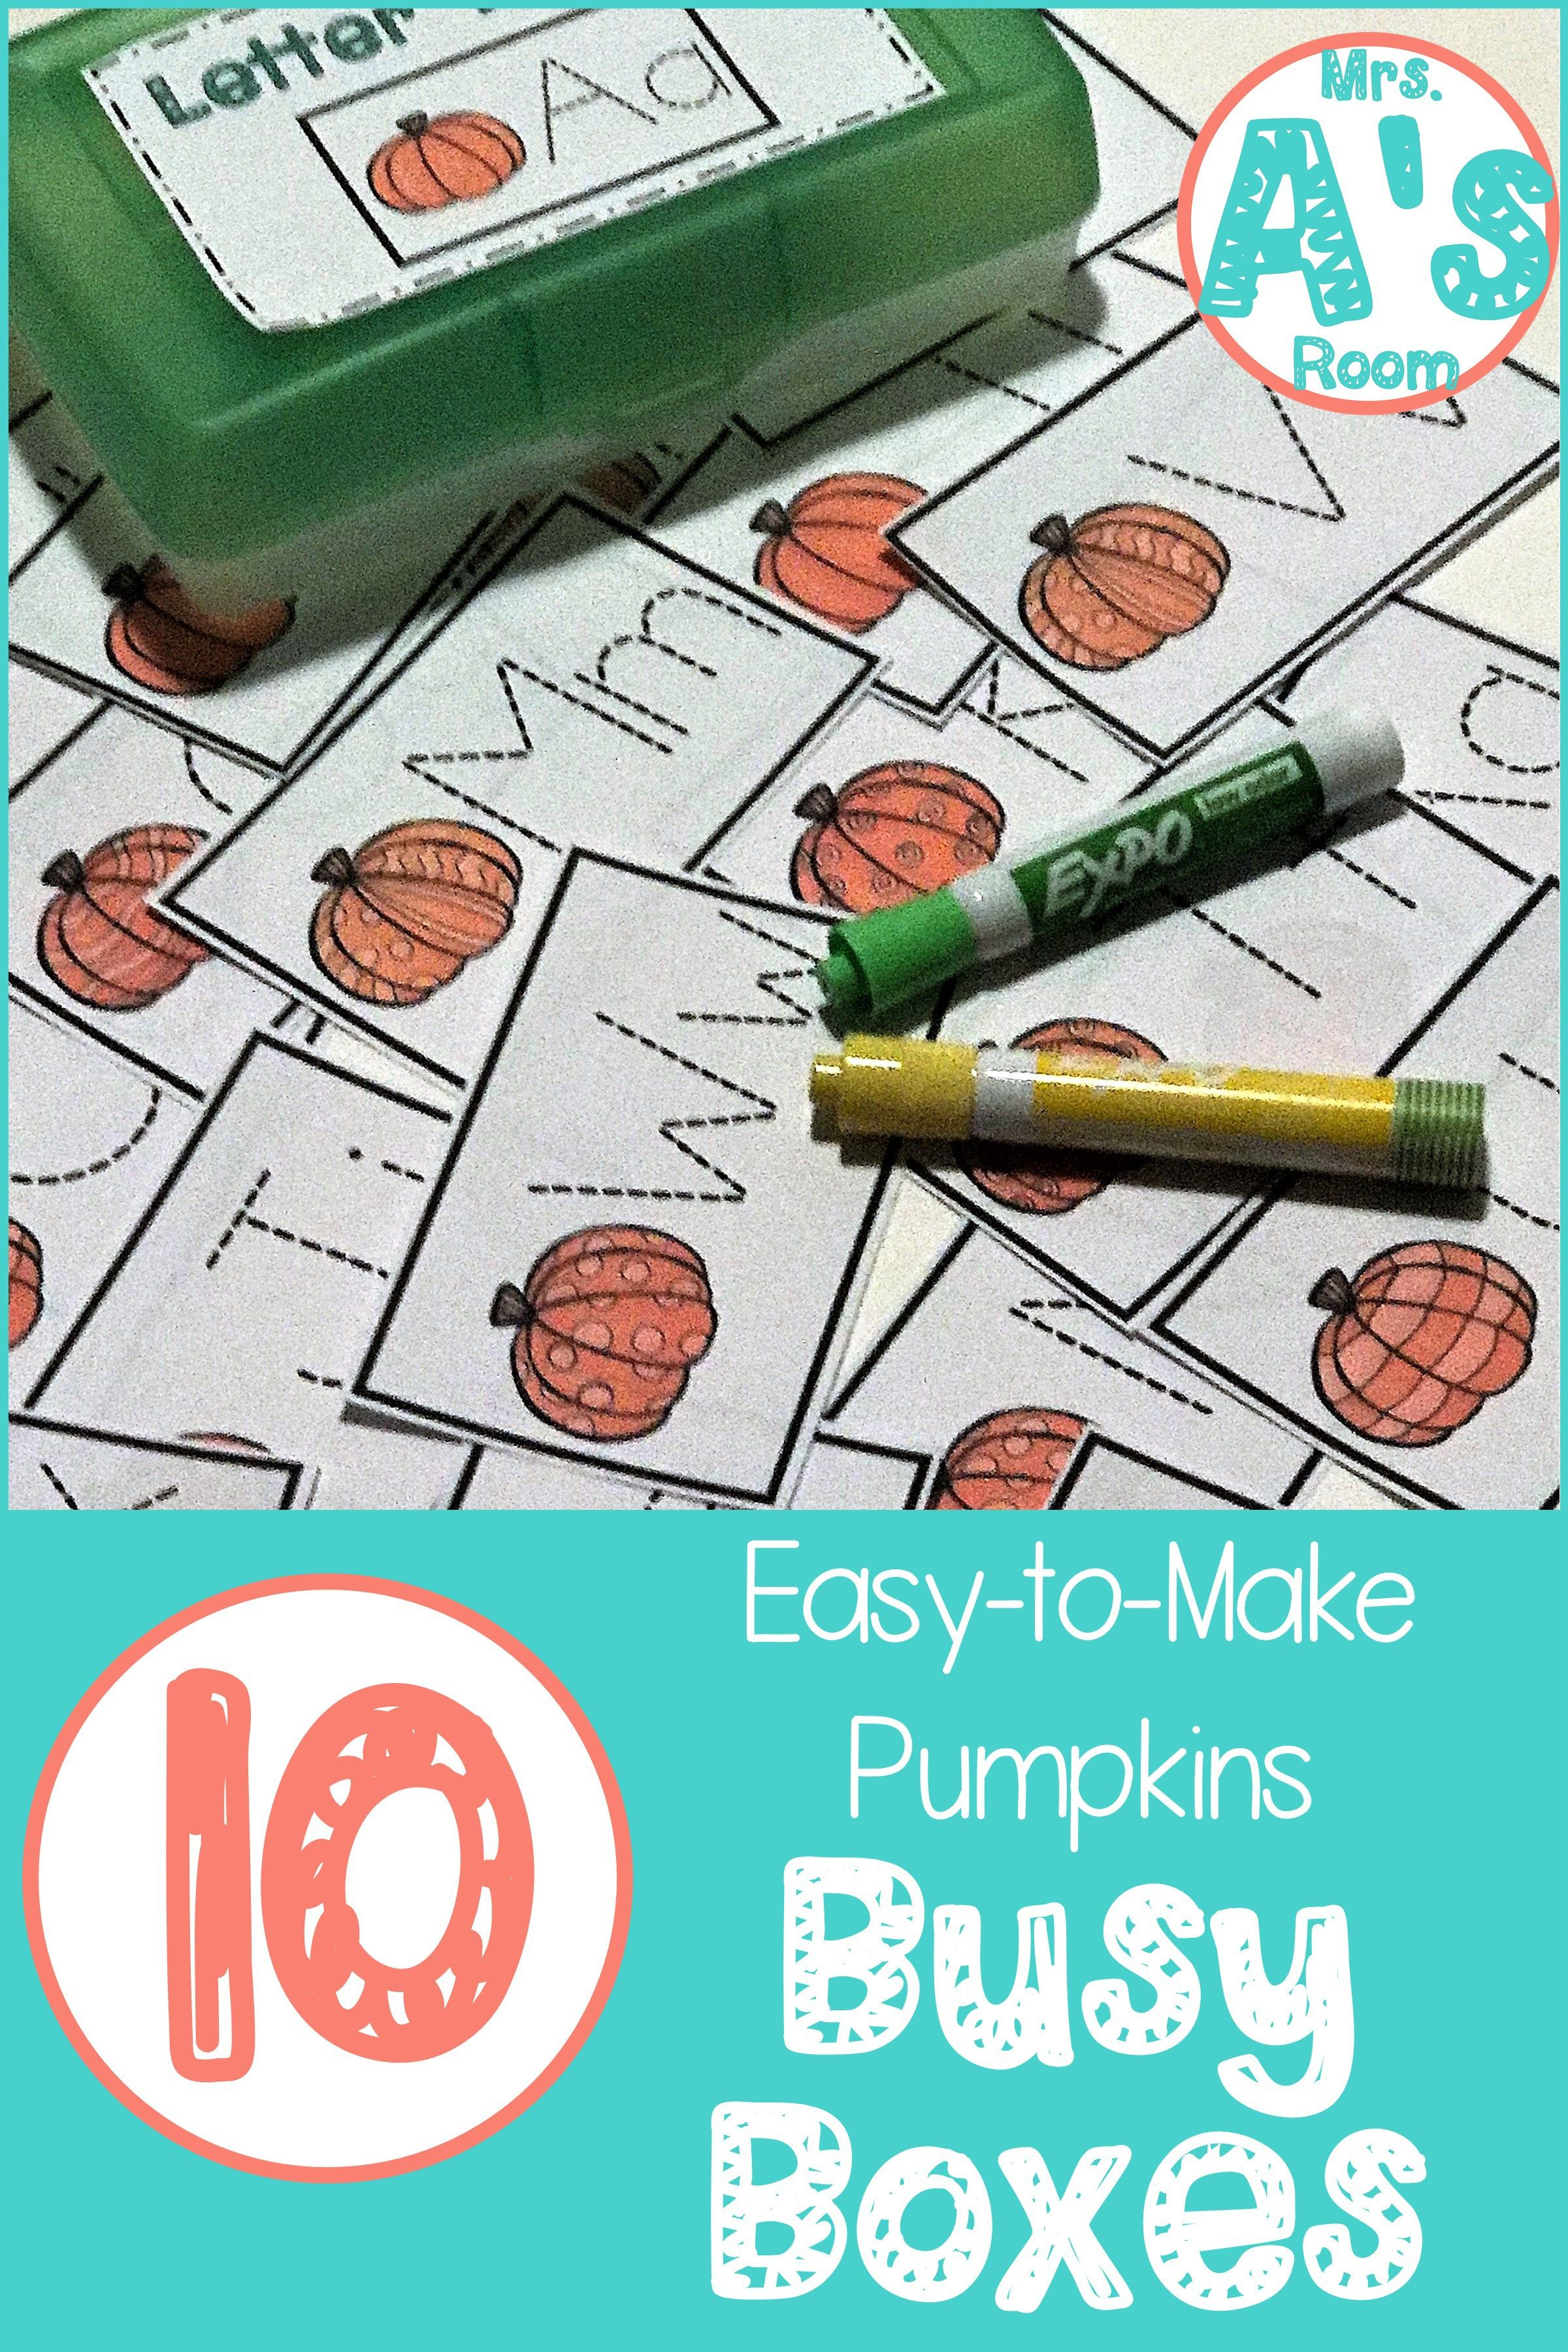 Ten Easy-to-Make Pumpkins Busy Boxes | Centers | Pinterest ...